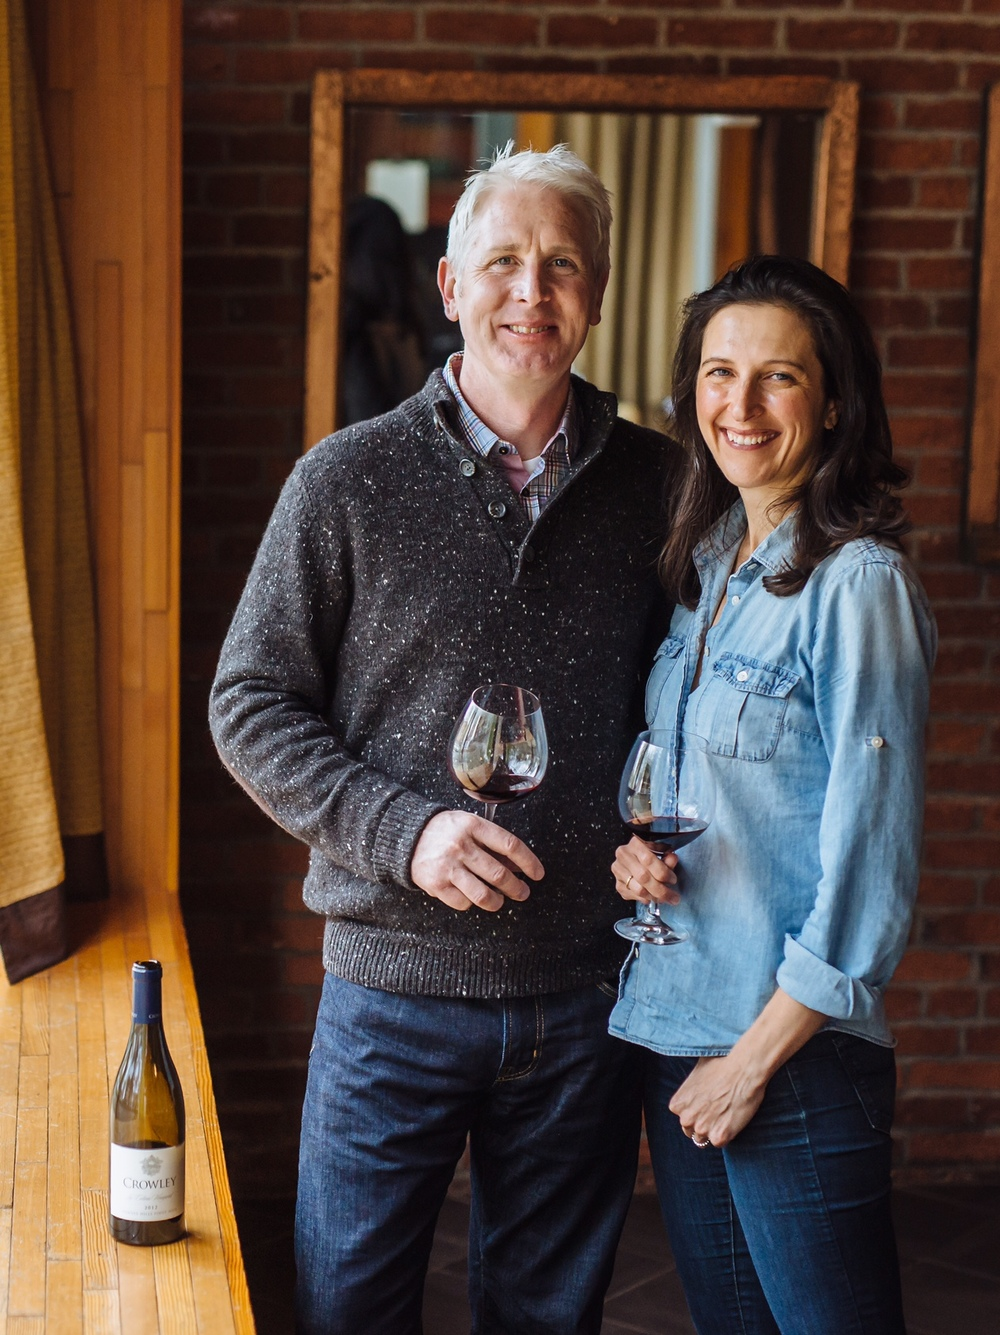 Tyson and Emily Crowley. Image courtesy of Crowley Wines.